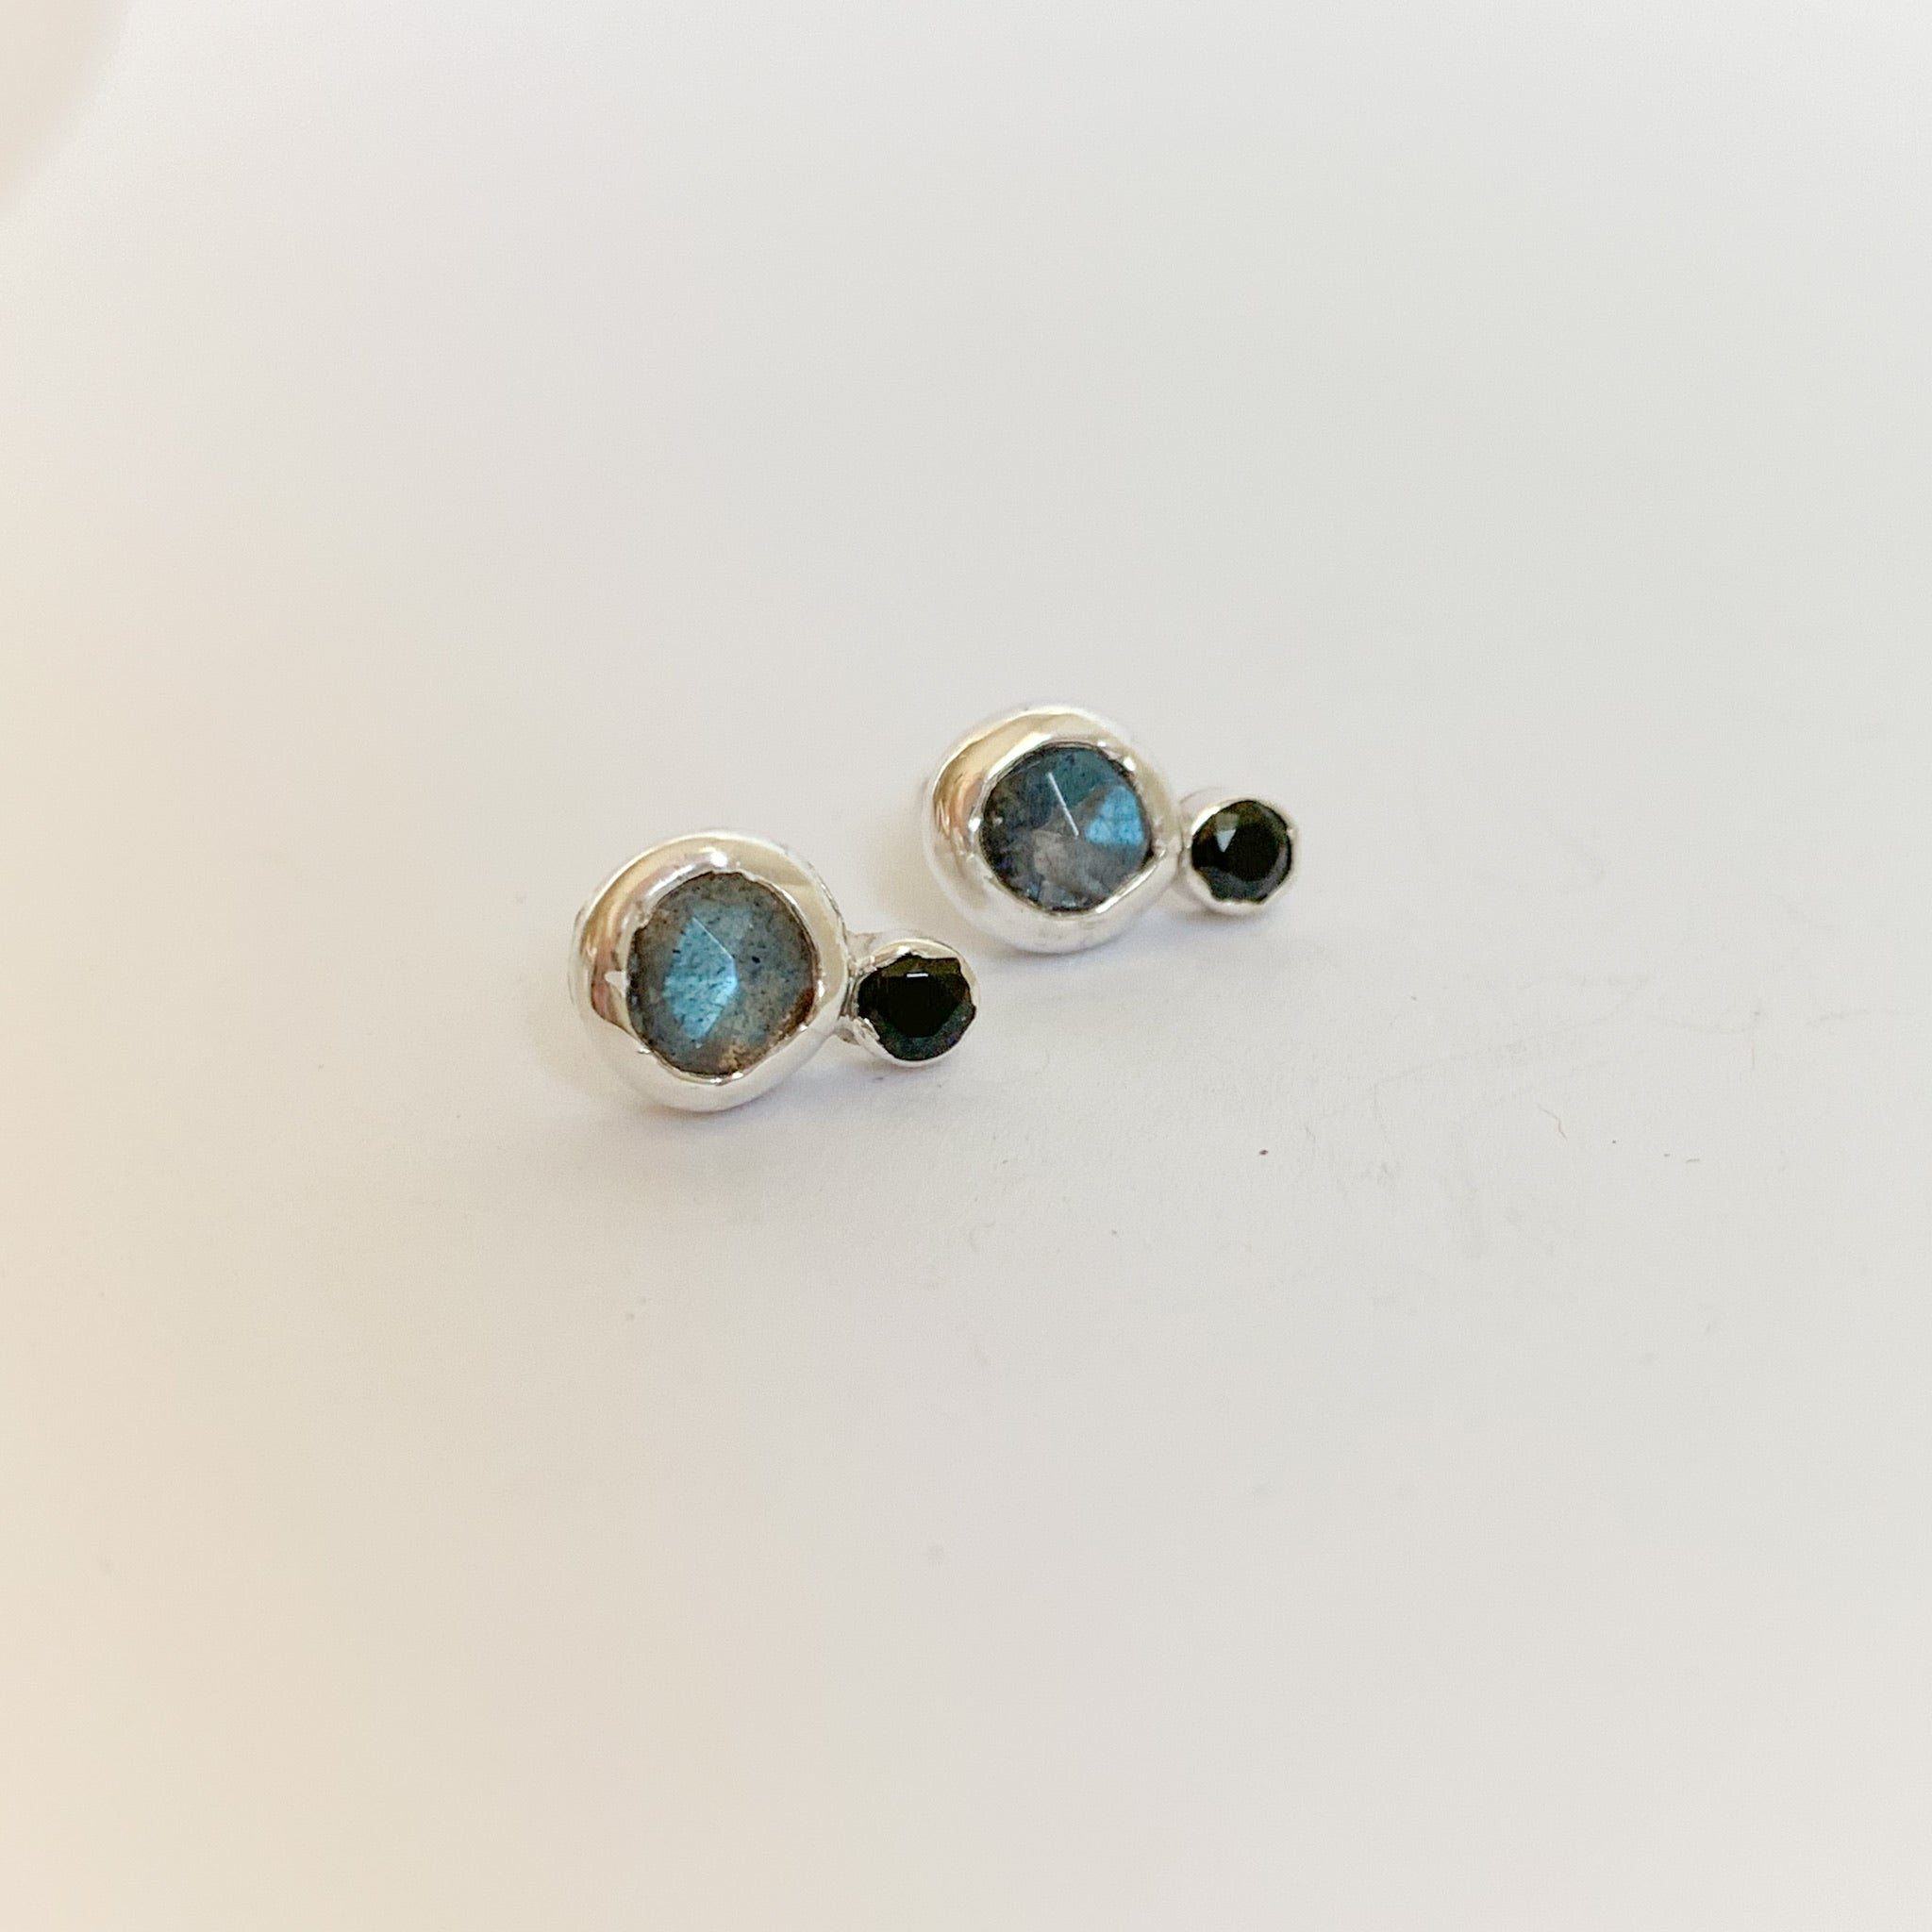 Orb earrings - labradorite and spinel